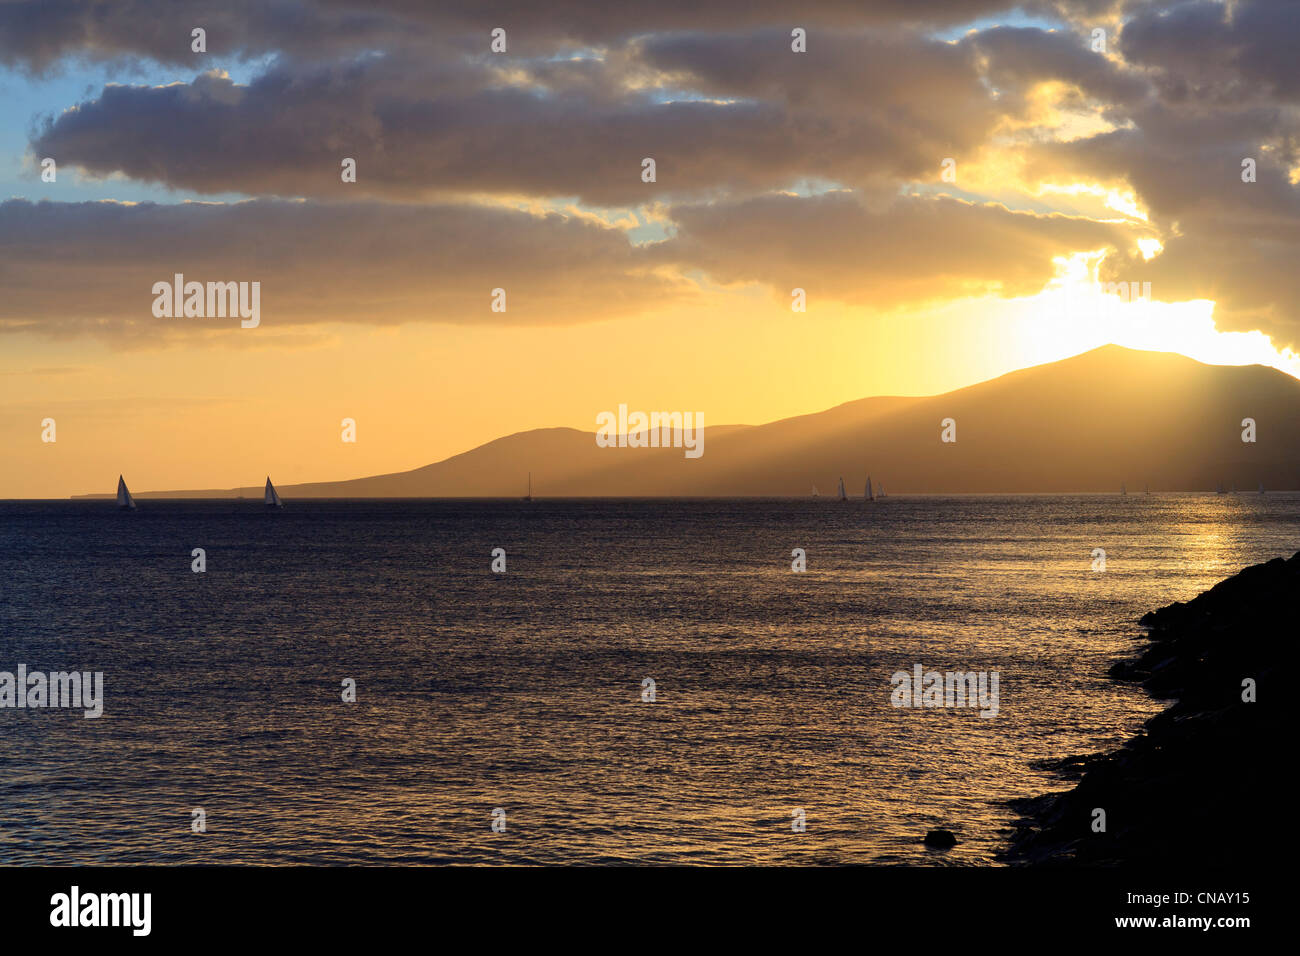 Sun setting over mountains and water - Stock Image